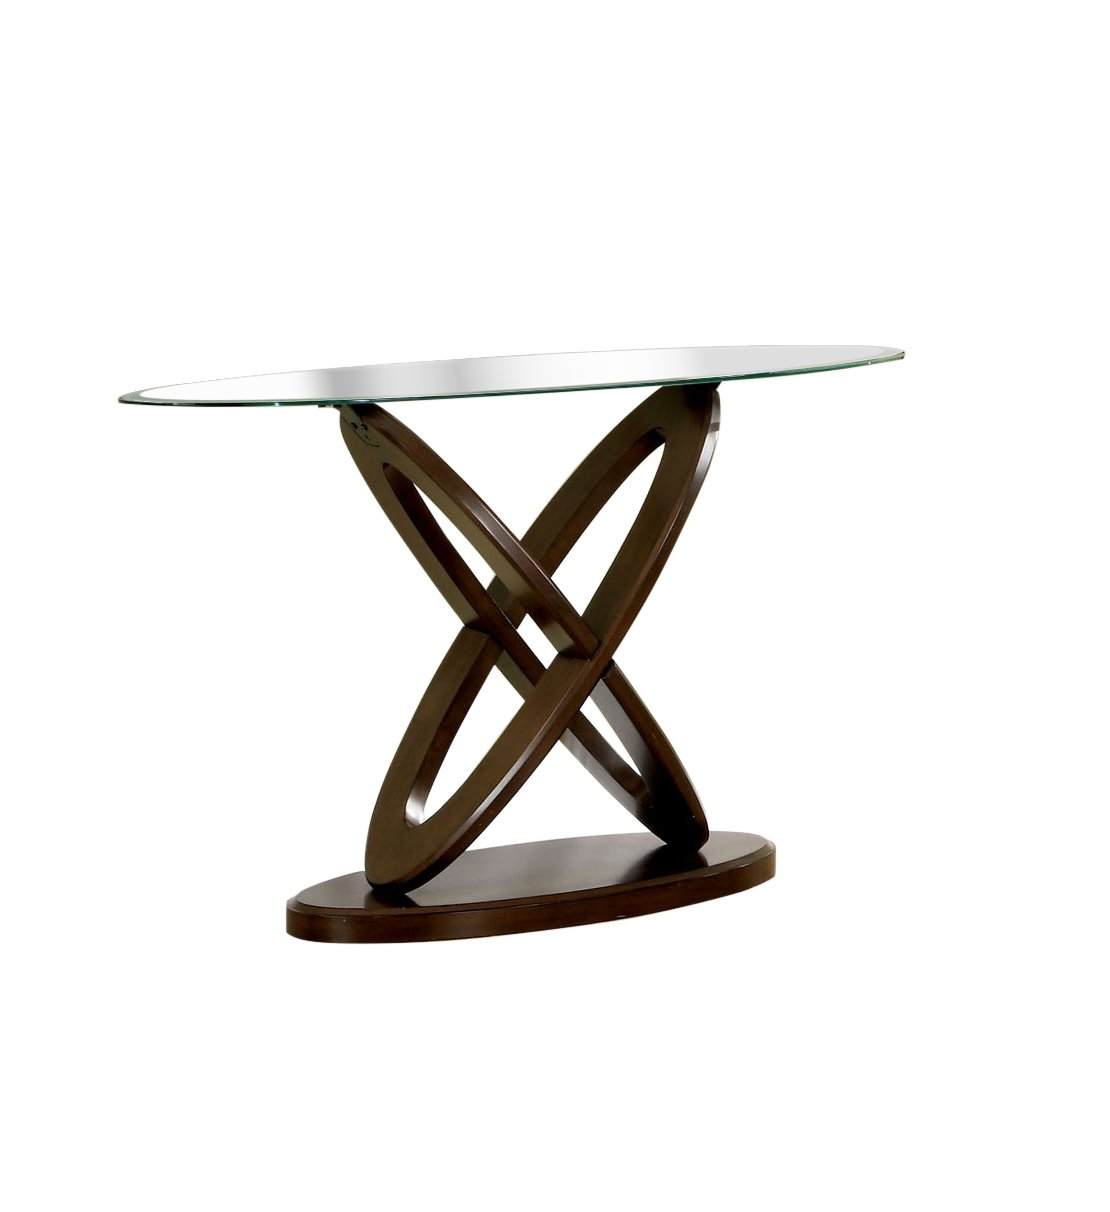 furniture america xenda sofa table with tempered monarch hall console accent cappuccino glass top and cross shaped base dark walnut finish kitchen dining small narrow simon lee